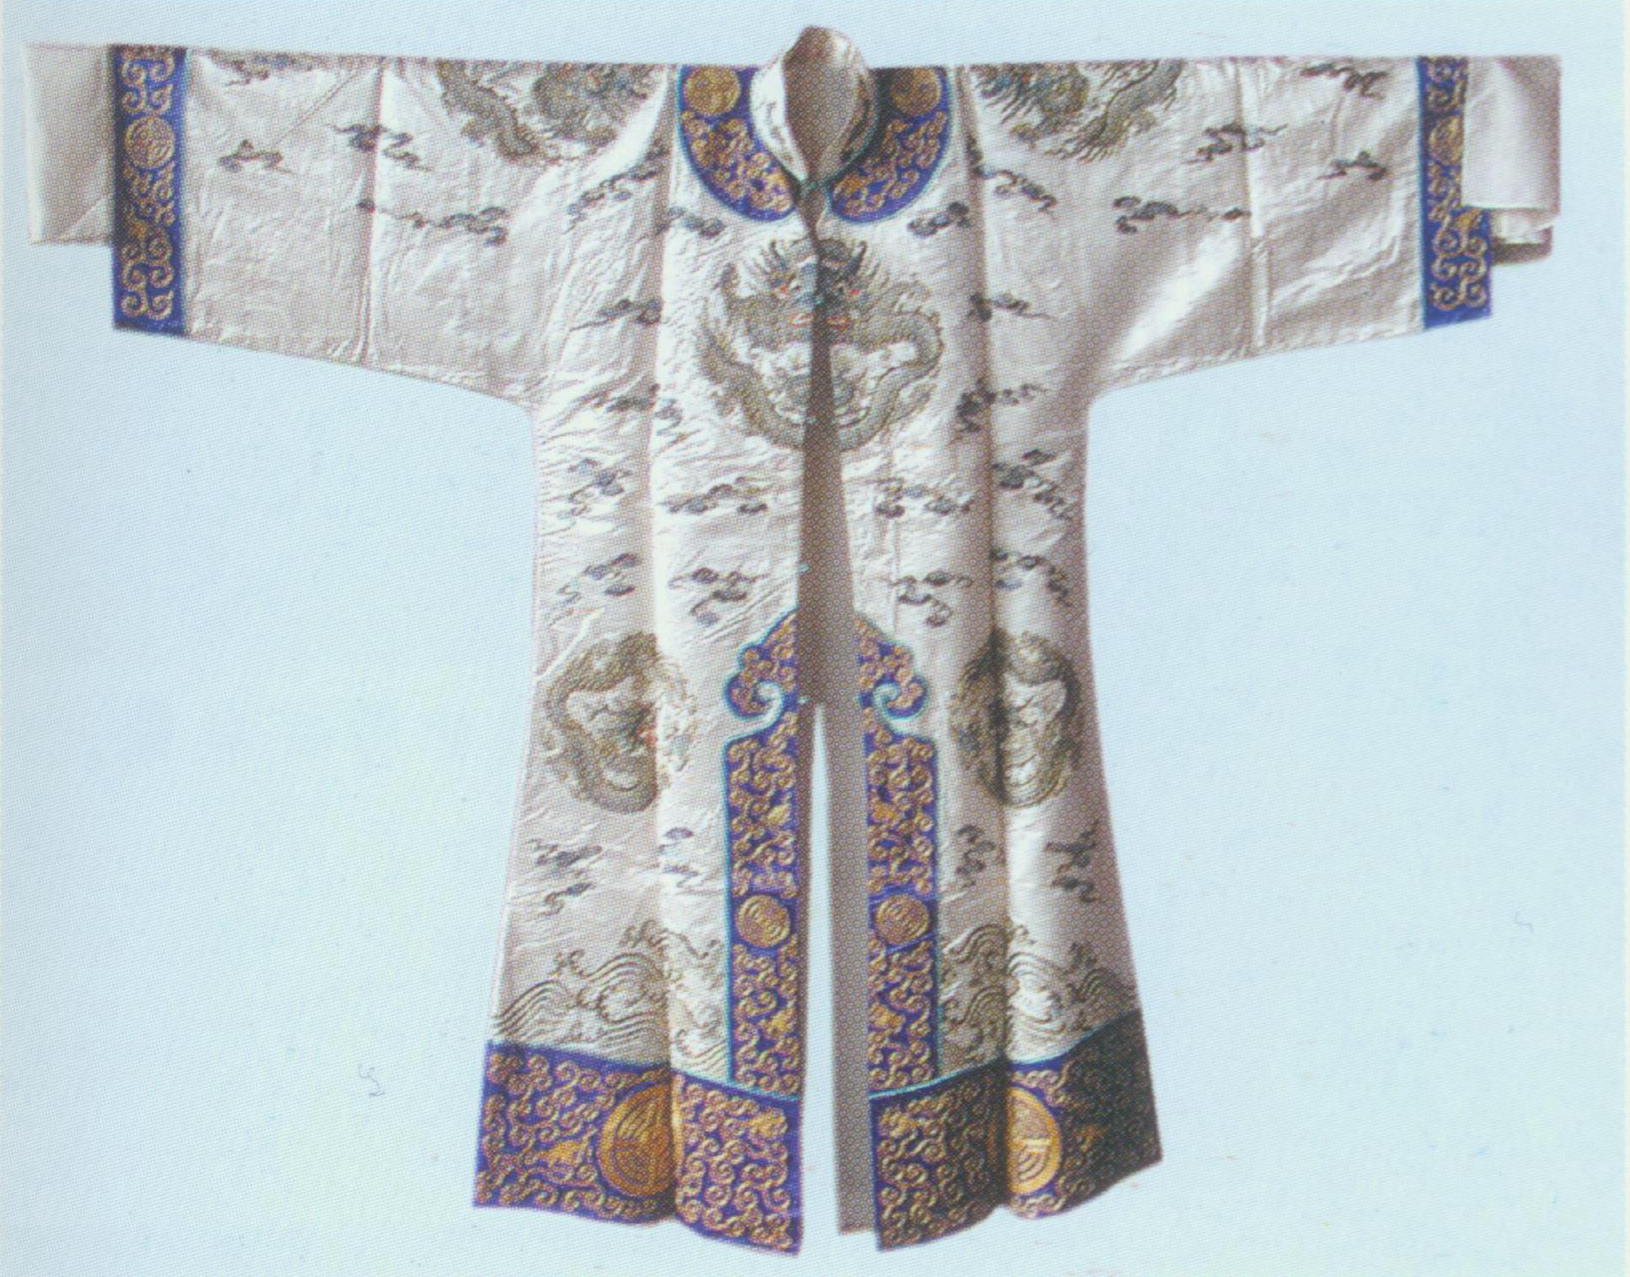 """Longtao yi  Theatrical costume worn by attendants (longtao). It has symmetrical opening with long collar band,top sleeves and water sleeves. And the fungus-shaped arabesque finishes the top of the center back slit, with undulant borders. Besides, the neckline, cuffs, edges of the opening in the front and back slit are all hemmed with colorful bands with motifs of acient coins, flowers, dragons and geometrical patterns. Several dragons are embroidered on the sleeves, front and back piece along with clouds and sea waves. Longtao usually come in groups of four as the guards. They process on stage carrying banners at the battle scene to present a strong army. the color is selected to match or harmonize with the principle roles they serve. The Red robe is called """"hong longtao"""", white called """"bai longtao""""."""